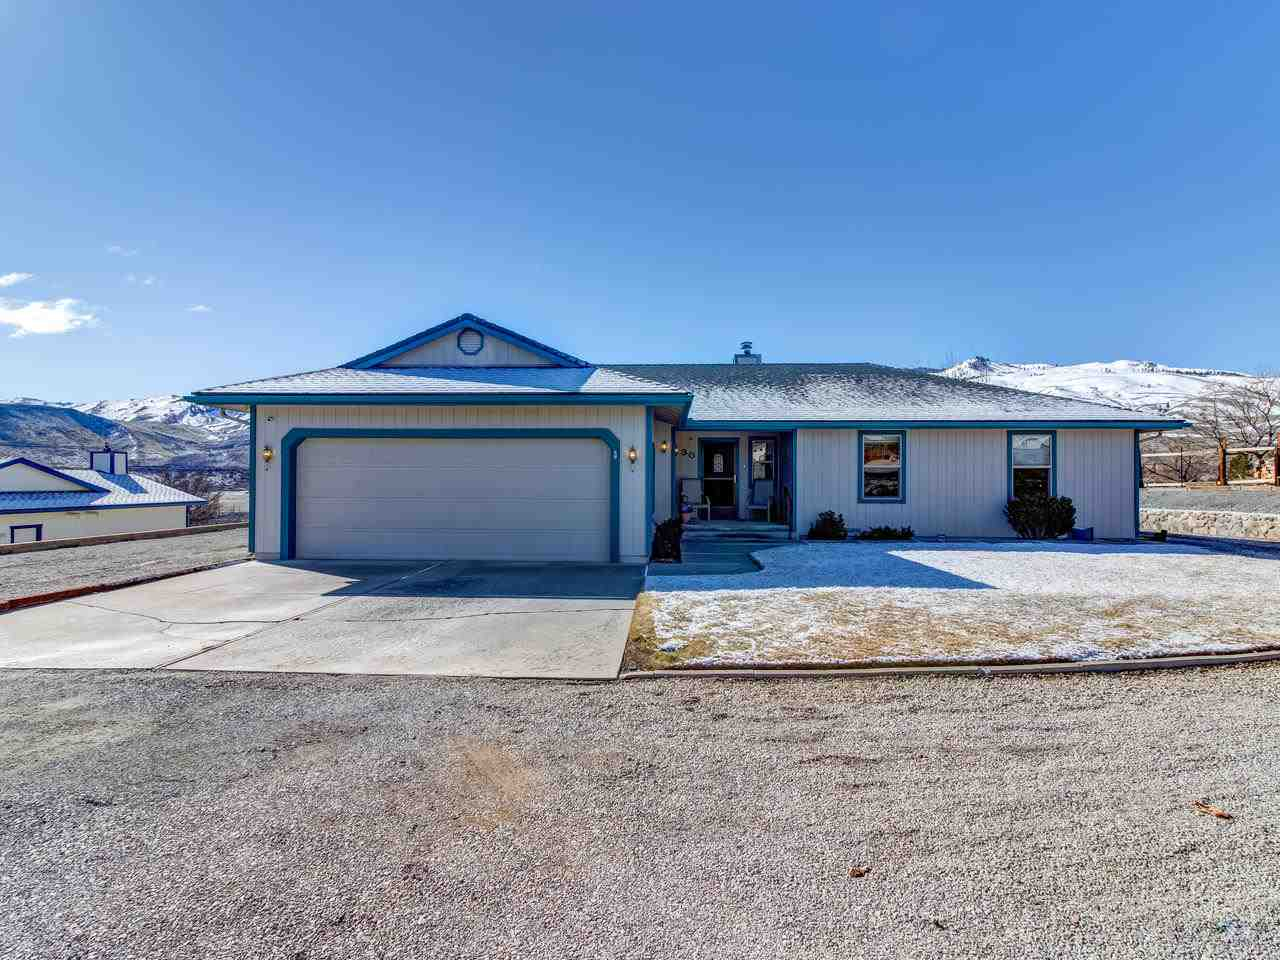 Single Family Home for Active at 30 Mogul Mountain Circle 30 Mogul Mountain Circle Reno, Nevada 89523 United States